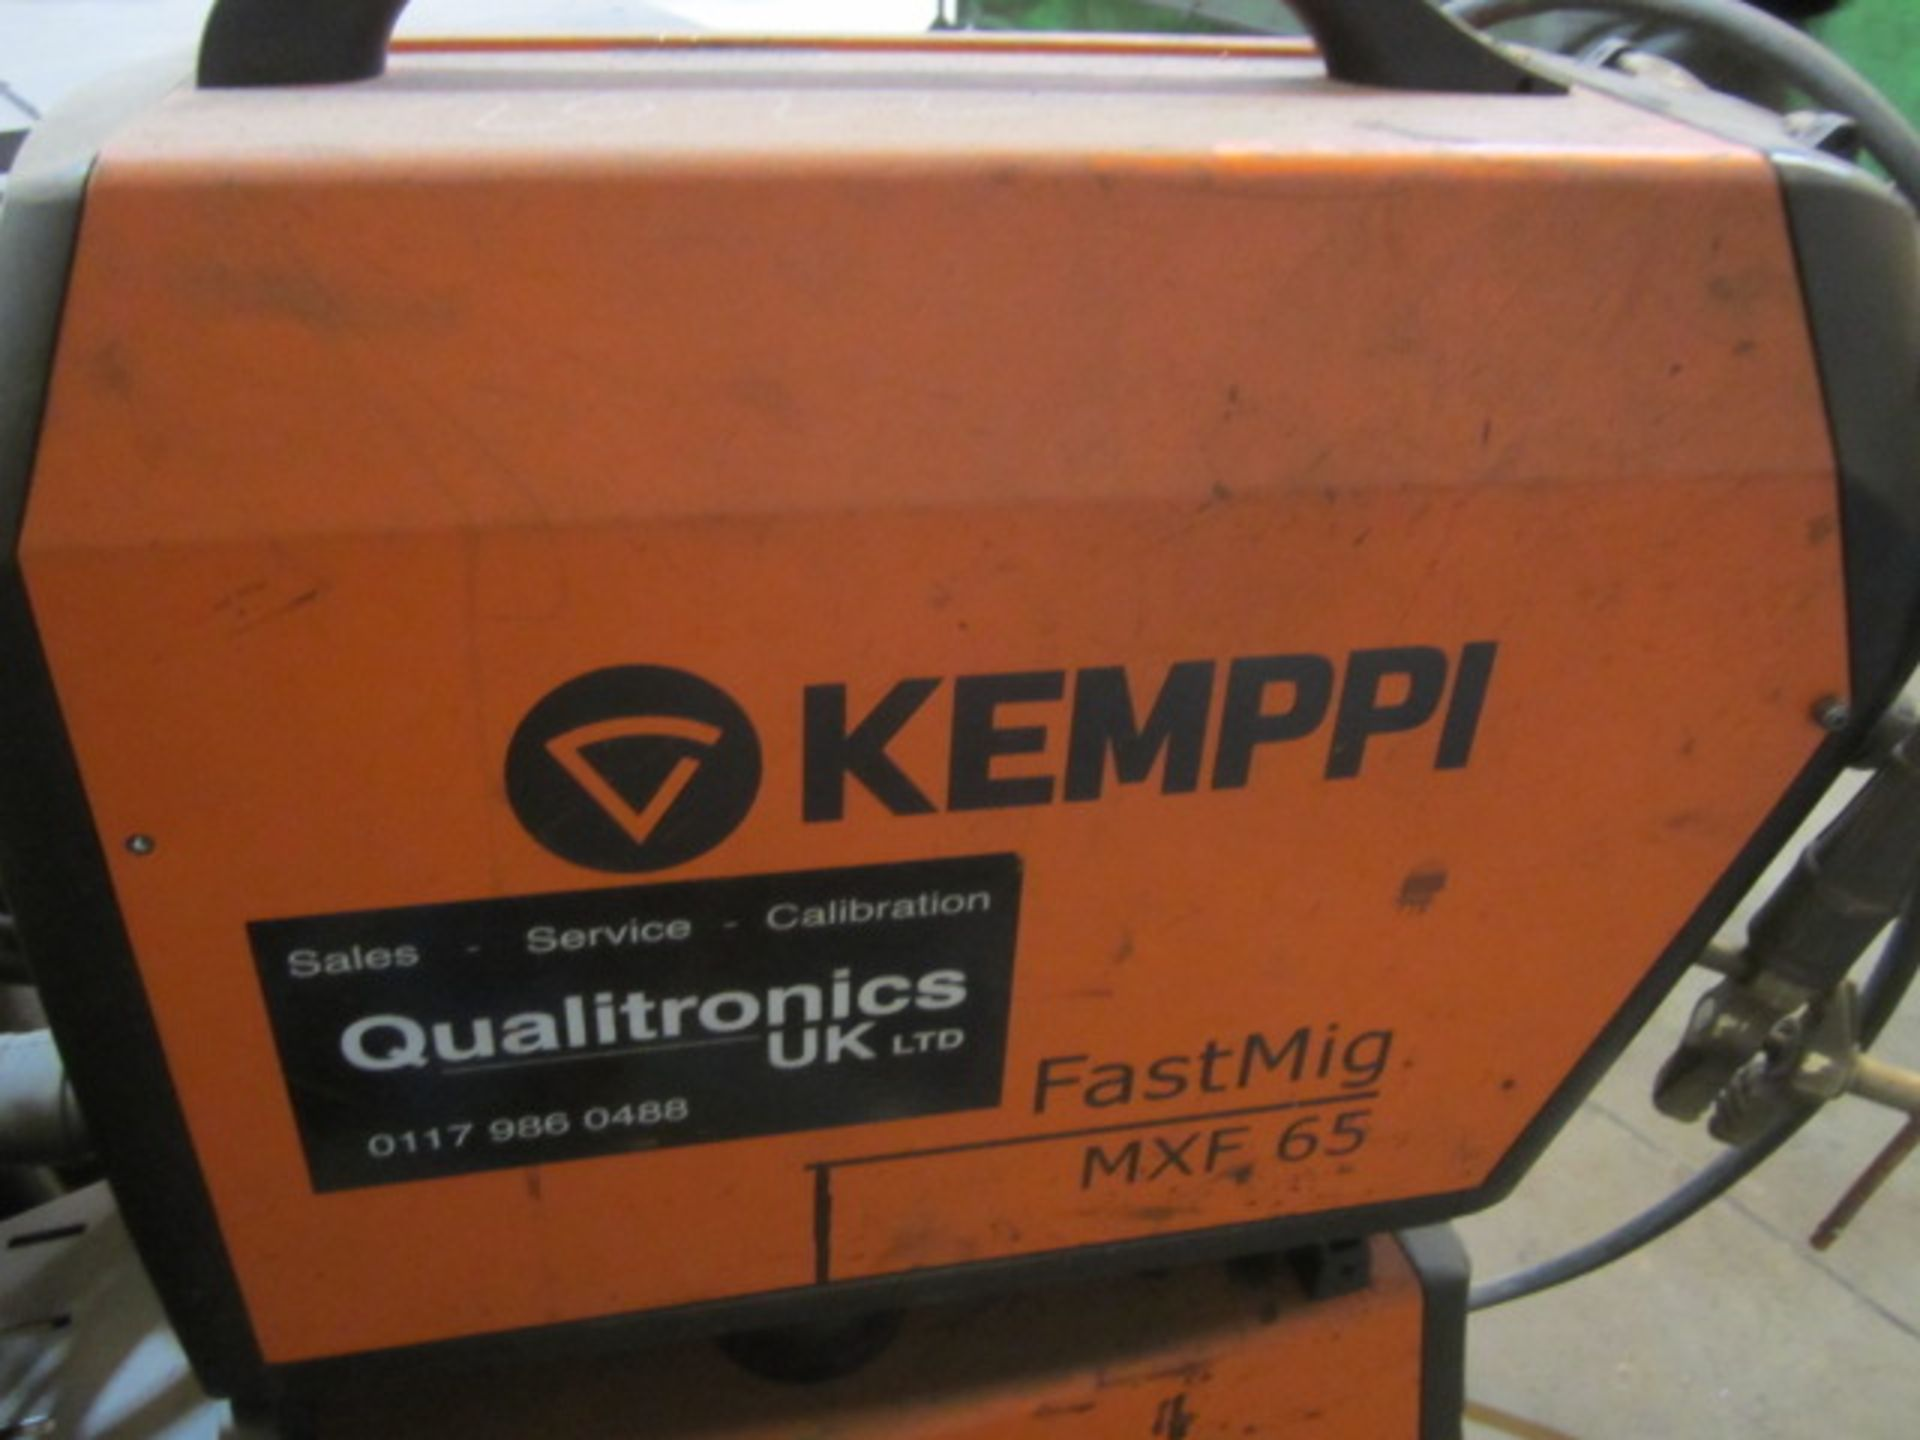 Kemppi Fast Mig M420 mig welder, serial no. 2674278, with Fast Mig MXF65 wire feeder, serial no. - Image 4 of 7